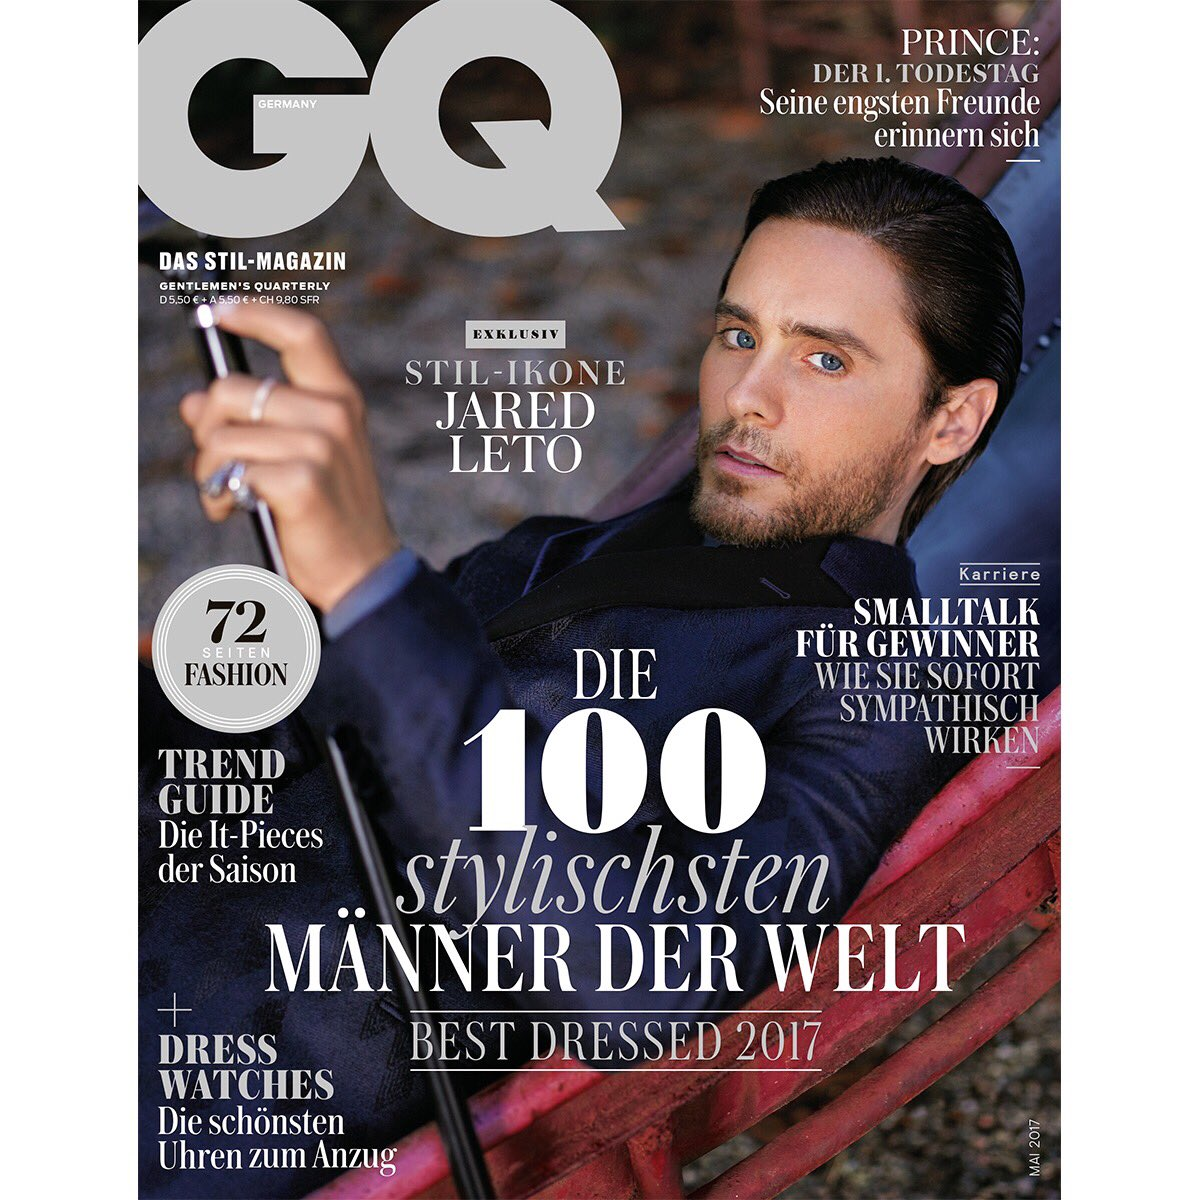 Gq Germany On Twitter Out Tmrw The Latest Gq Issue W Coverstar